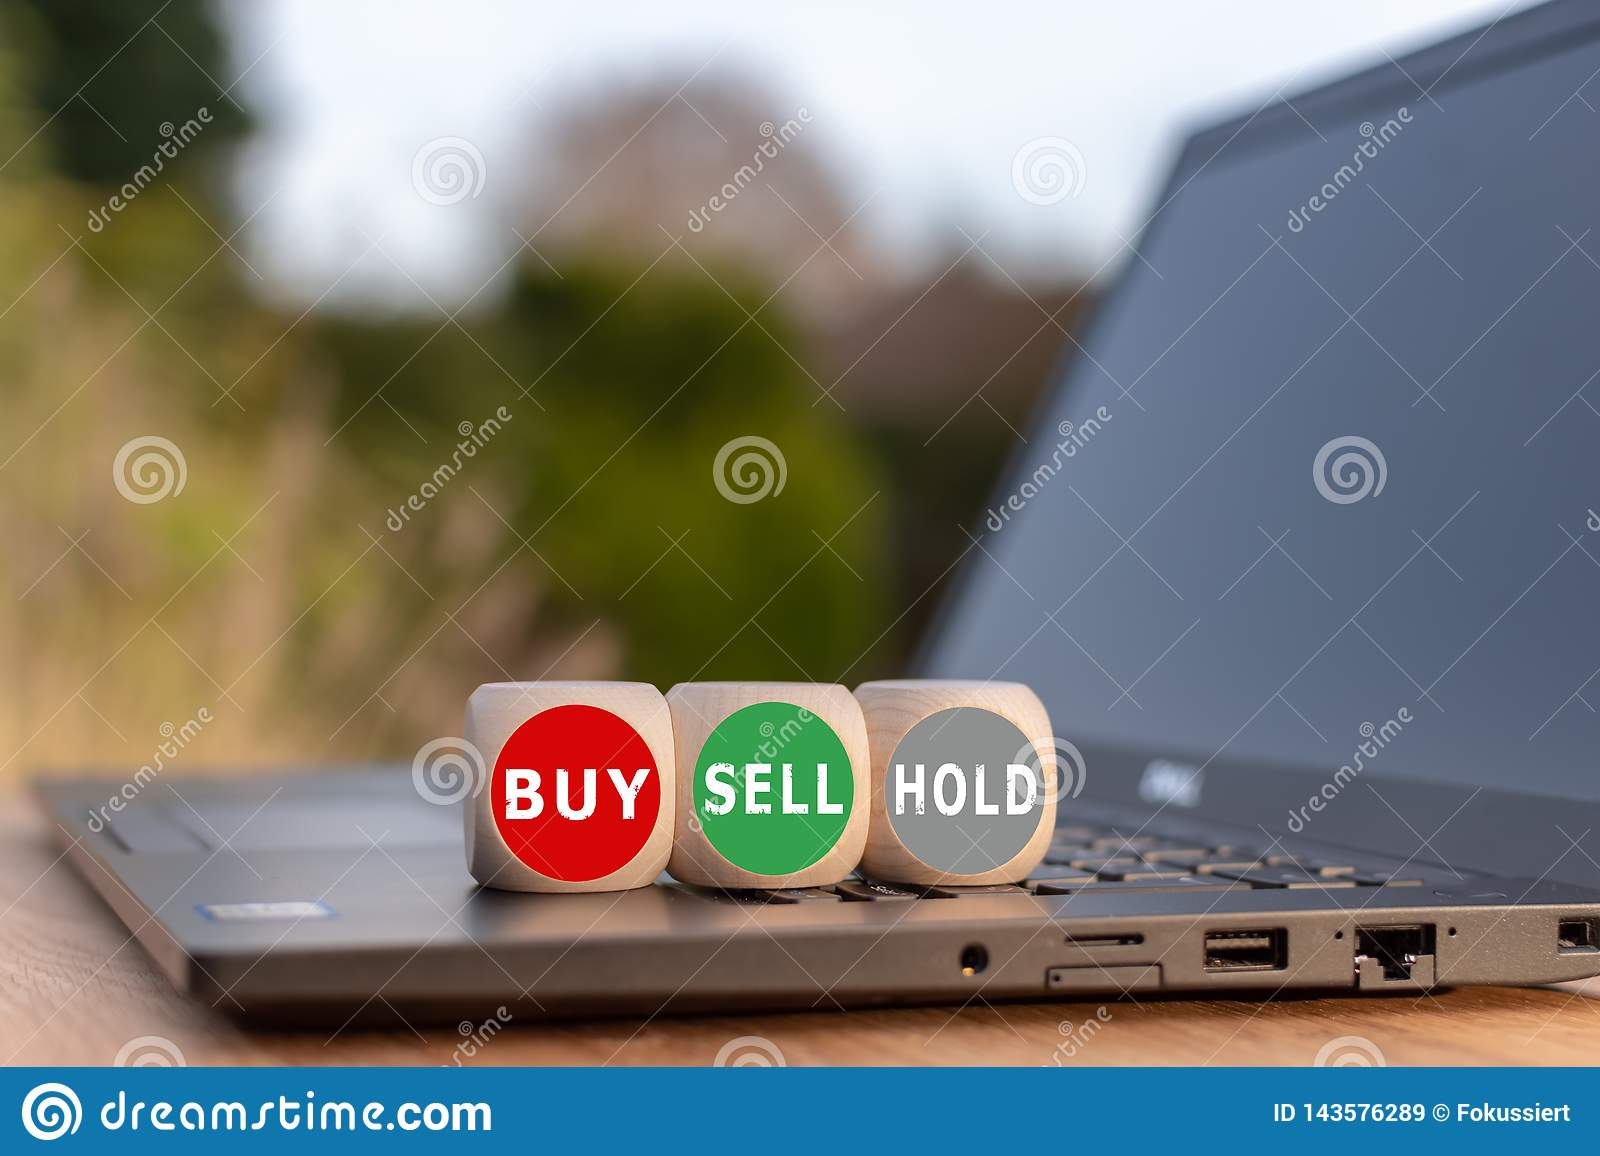 Symbol for the decision to buy, to sell or to hold.